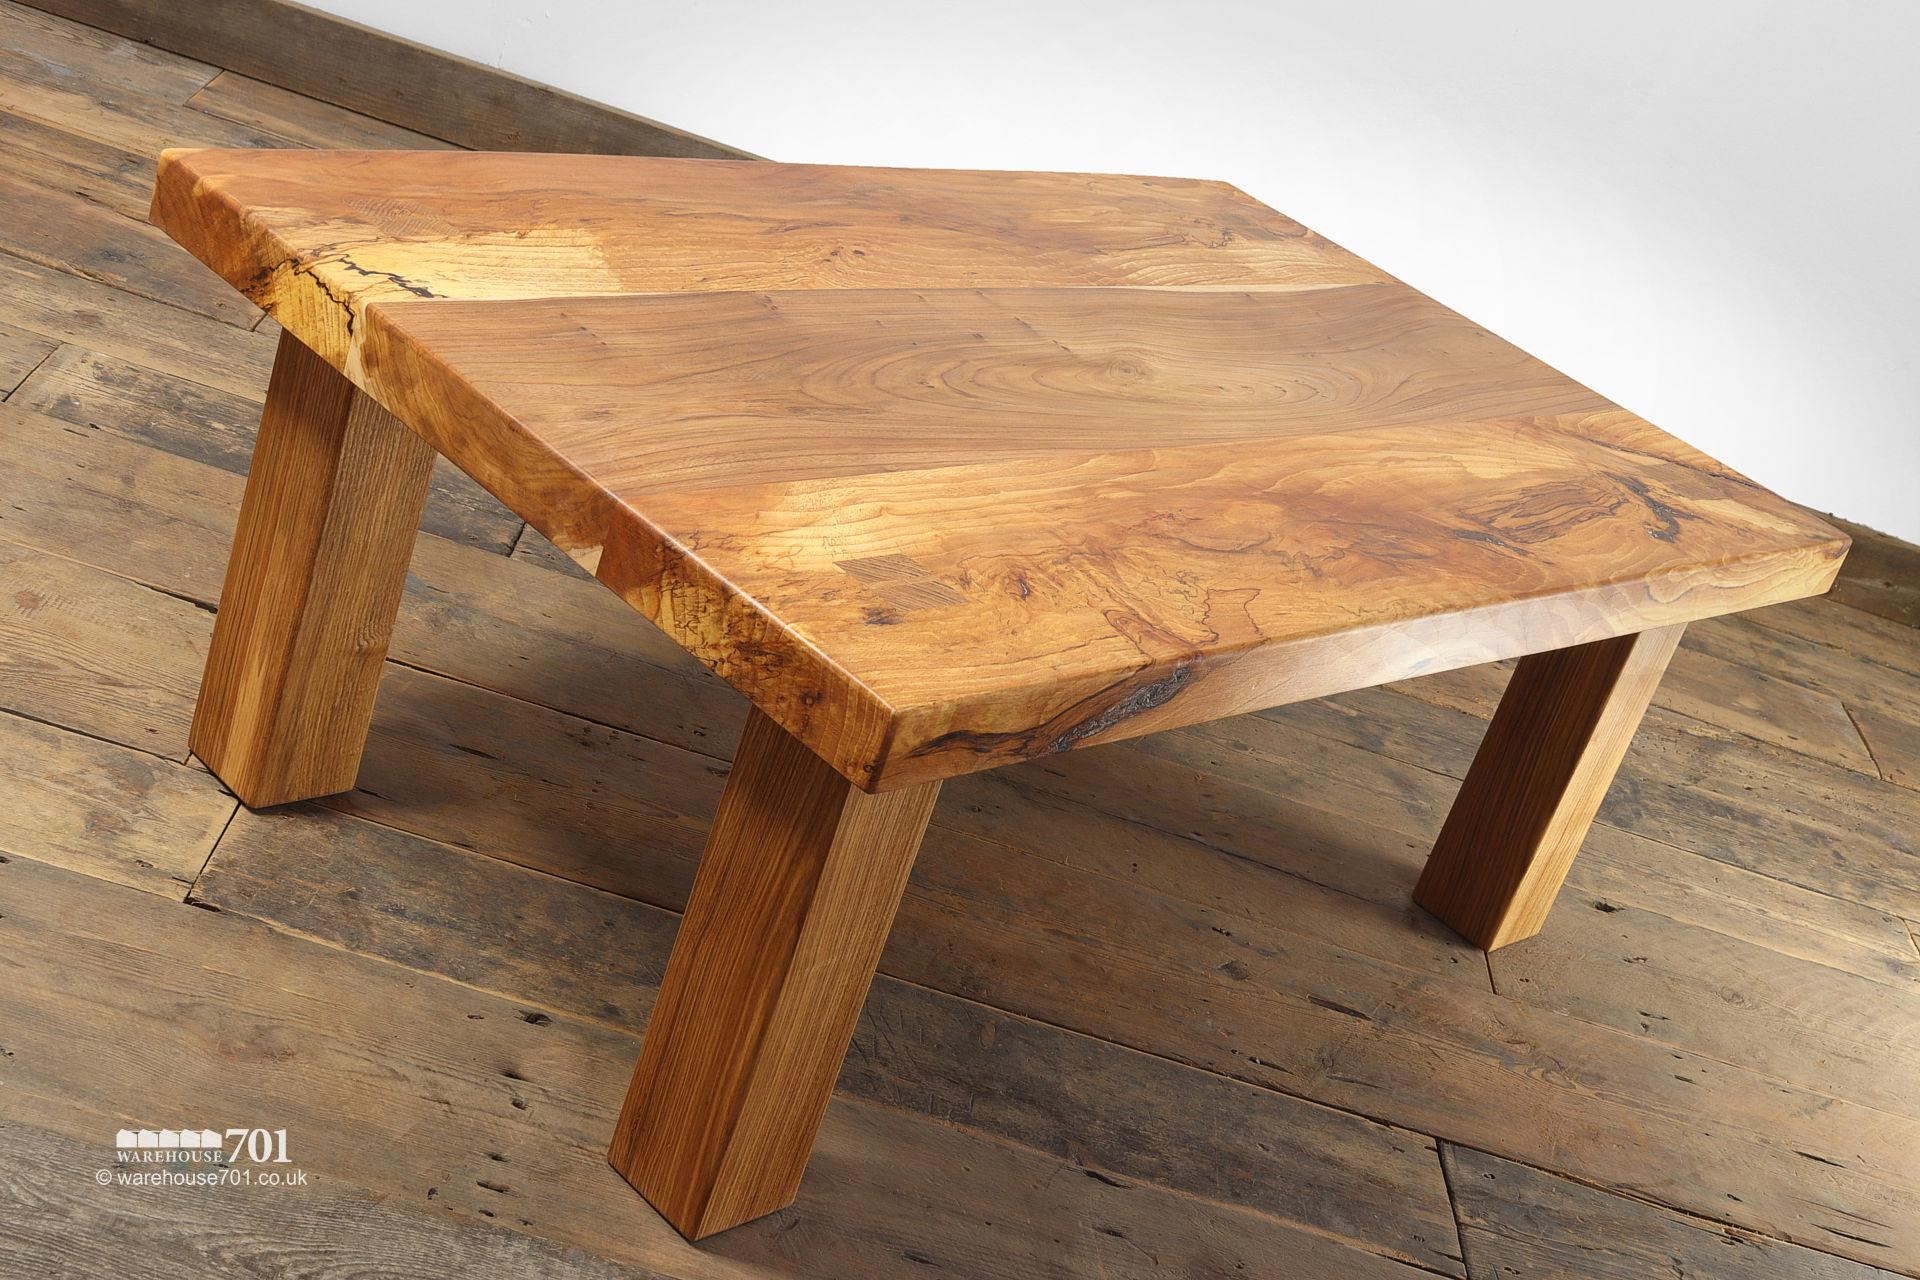 Simply the Most Beautiful Little Coffee Table Ever #8